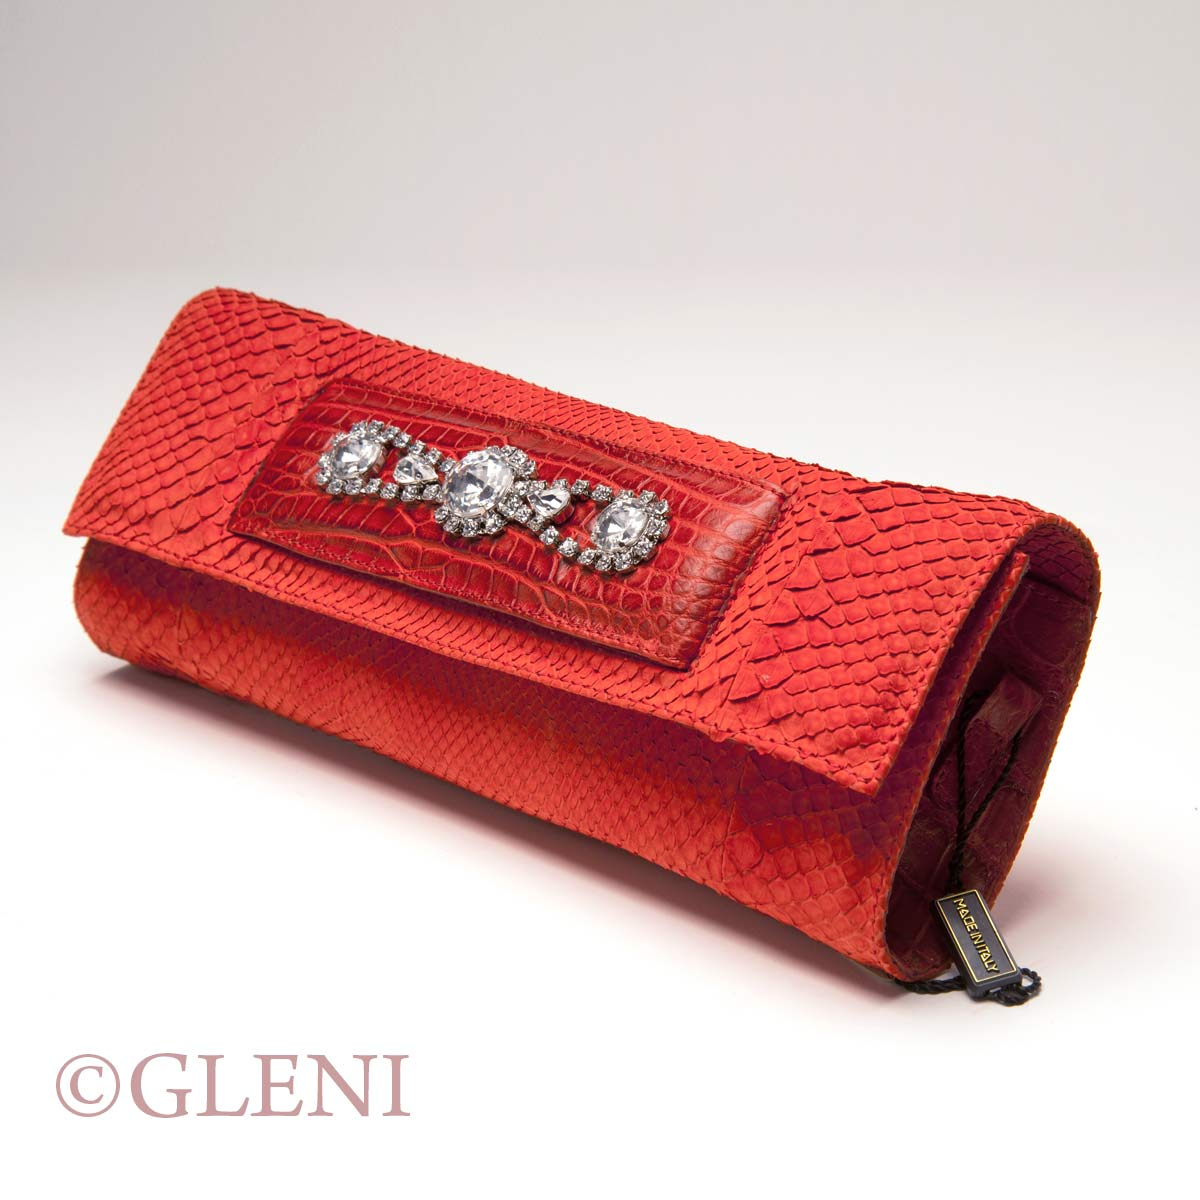 Red handbag made in Italy